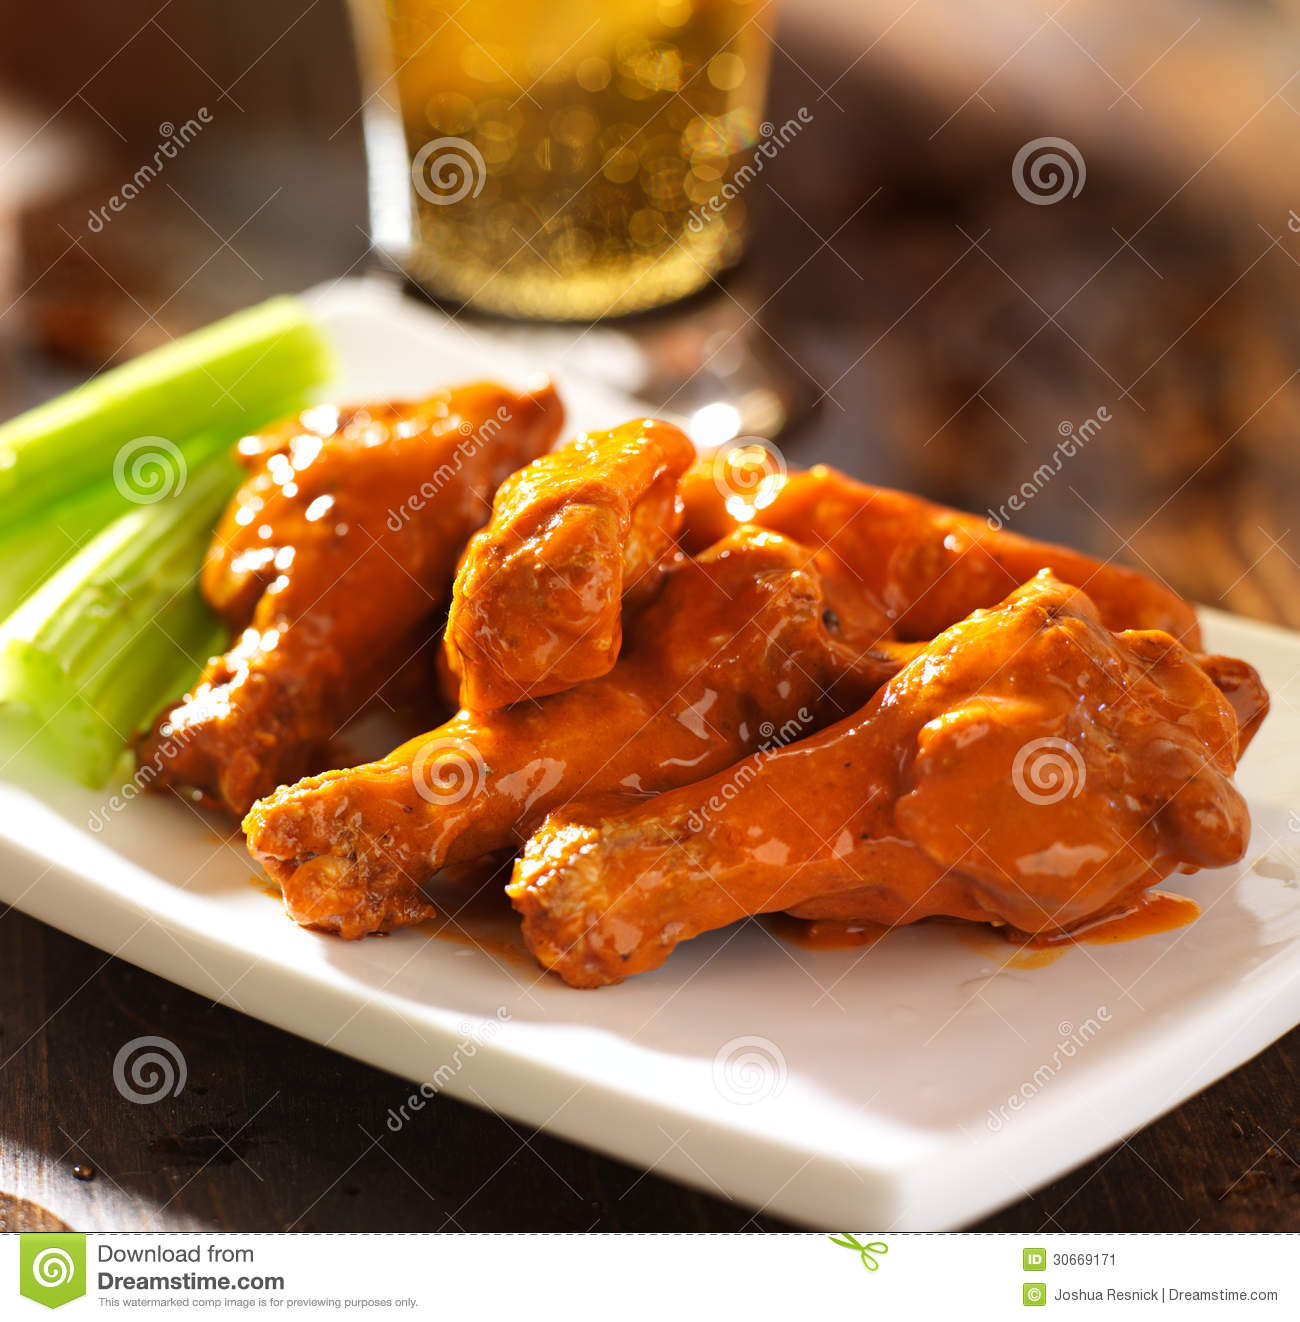 Chicken and beer - photo#24